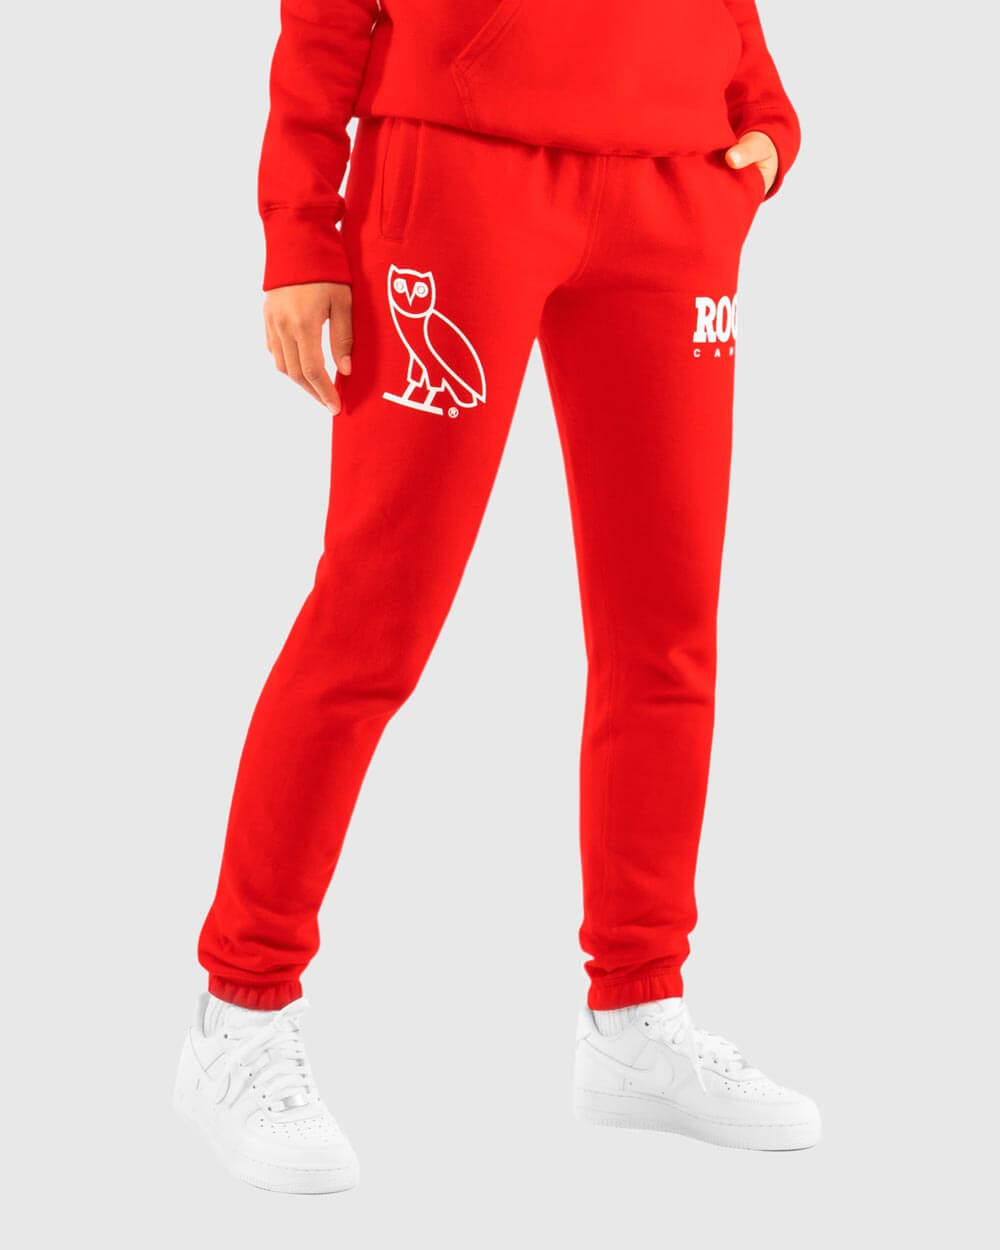 OVO x ROOTS WOMEN'S SWEATPANT - RED